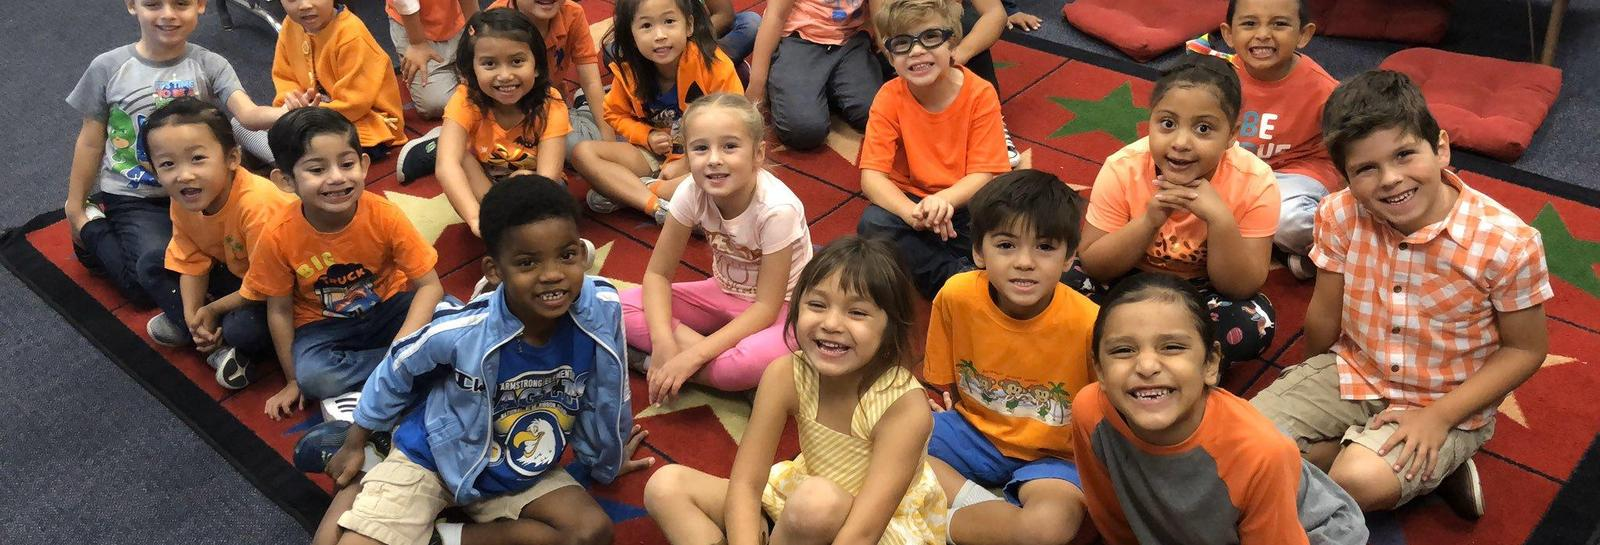 Kindergarten Students Support Bullying Awareness - Armstrong Elementary Kindergarten students wear orange to support bullying awareness! #proud2bepusd #ArmstrongElementary http://edl.io/n1109622